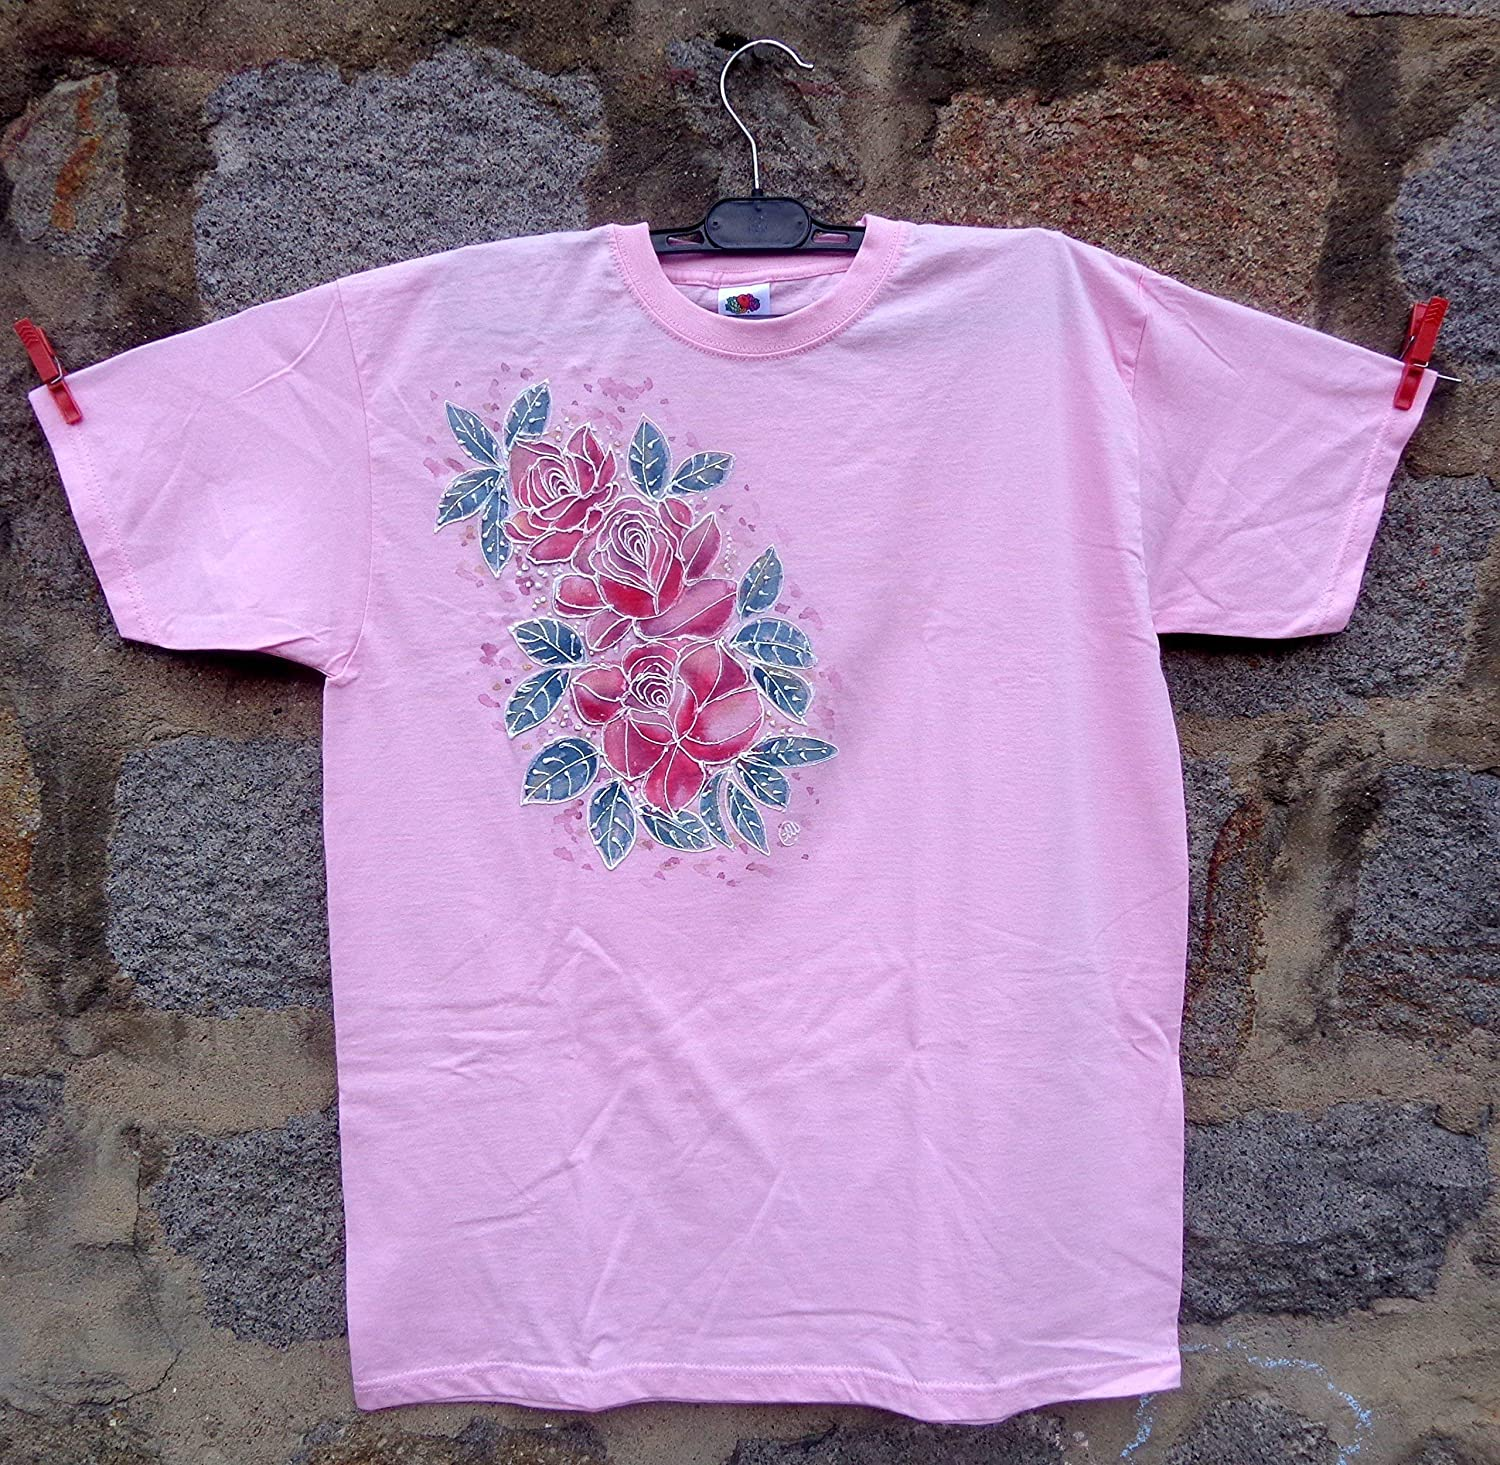 ed3fa7c1a8994 Sale!!!30% Off,Hand Painted Roses Women's T-shirt/Girl Party/Pink ...